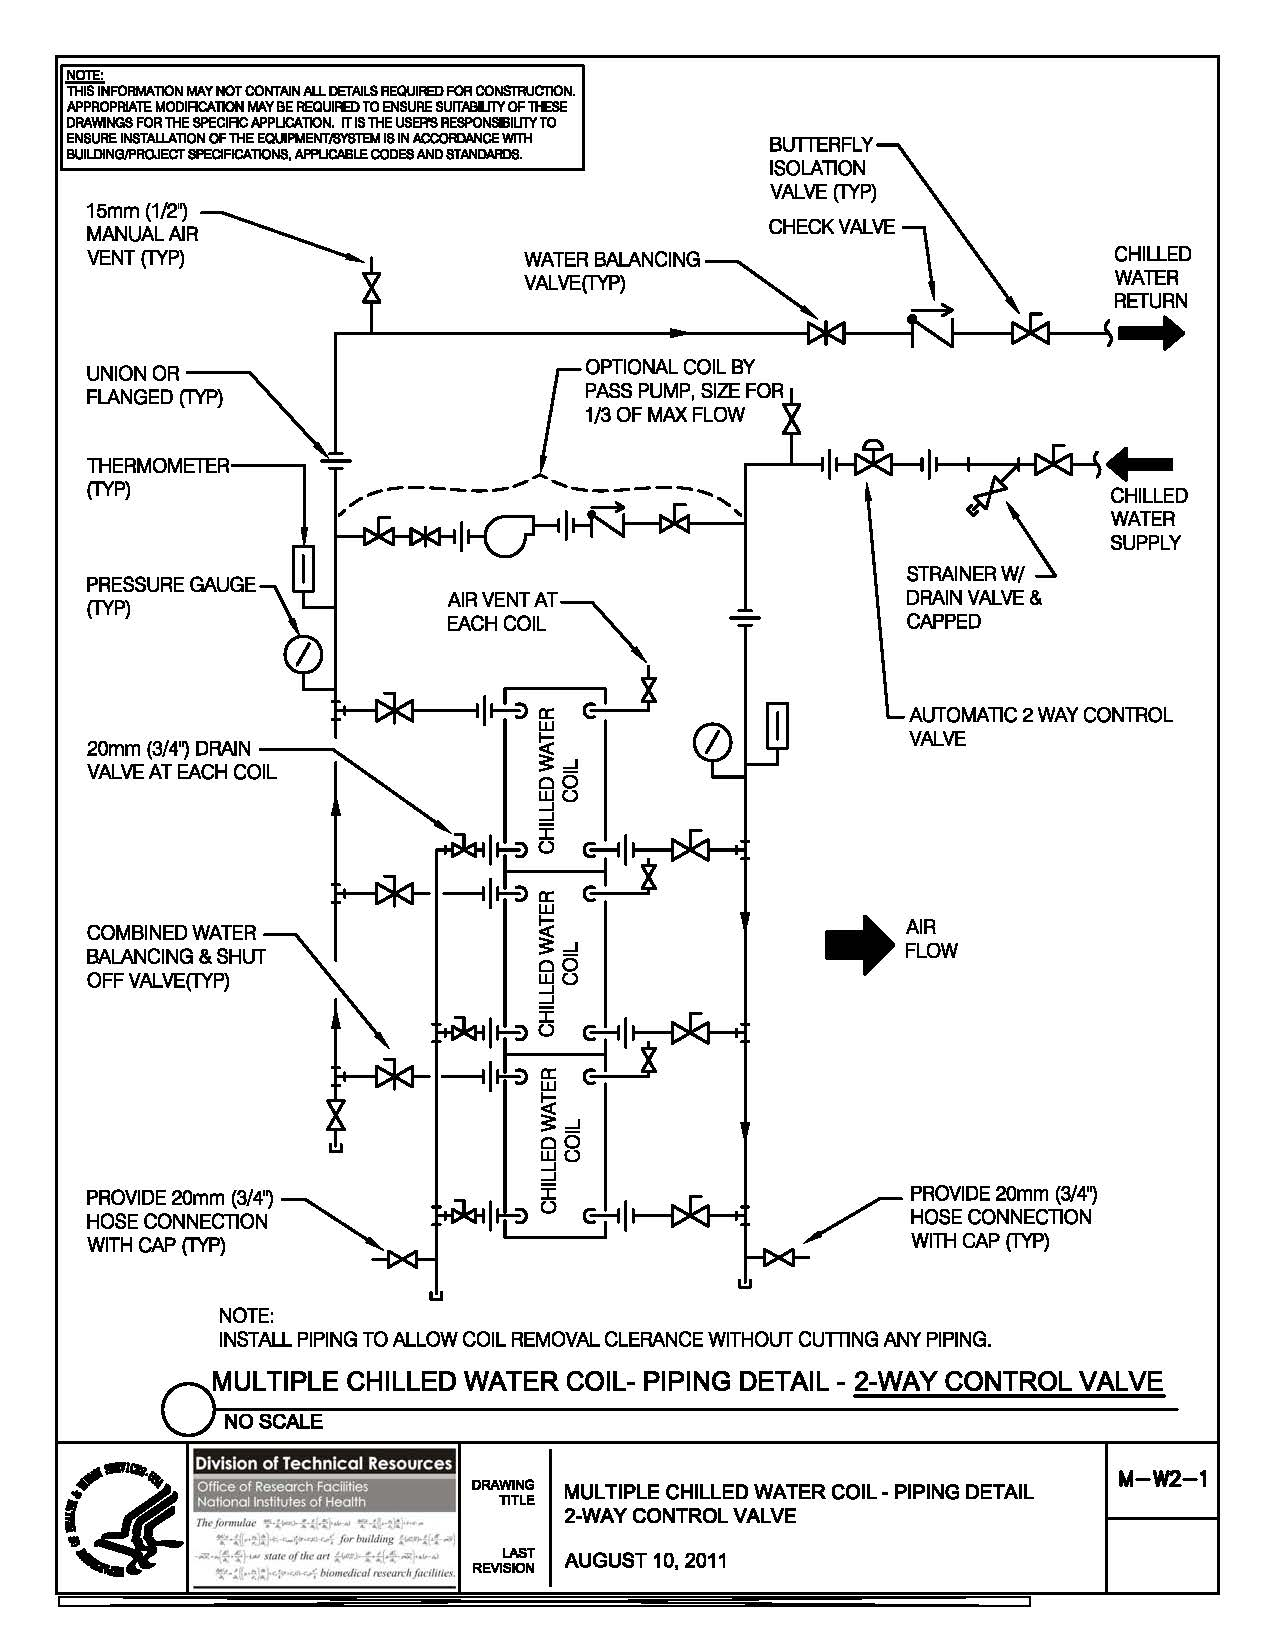 Process Flow Diagram in addition Lng Refrigeration moreover Schematic Symbols Of Valves further 3480160 additionally Flow Chart Symbols. on mechanical piping schematic symbols